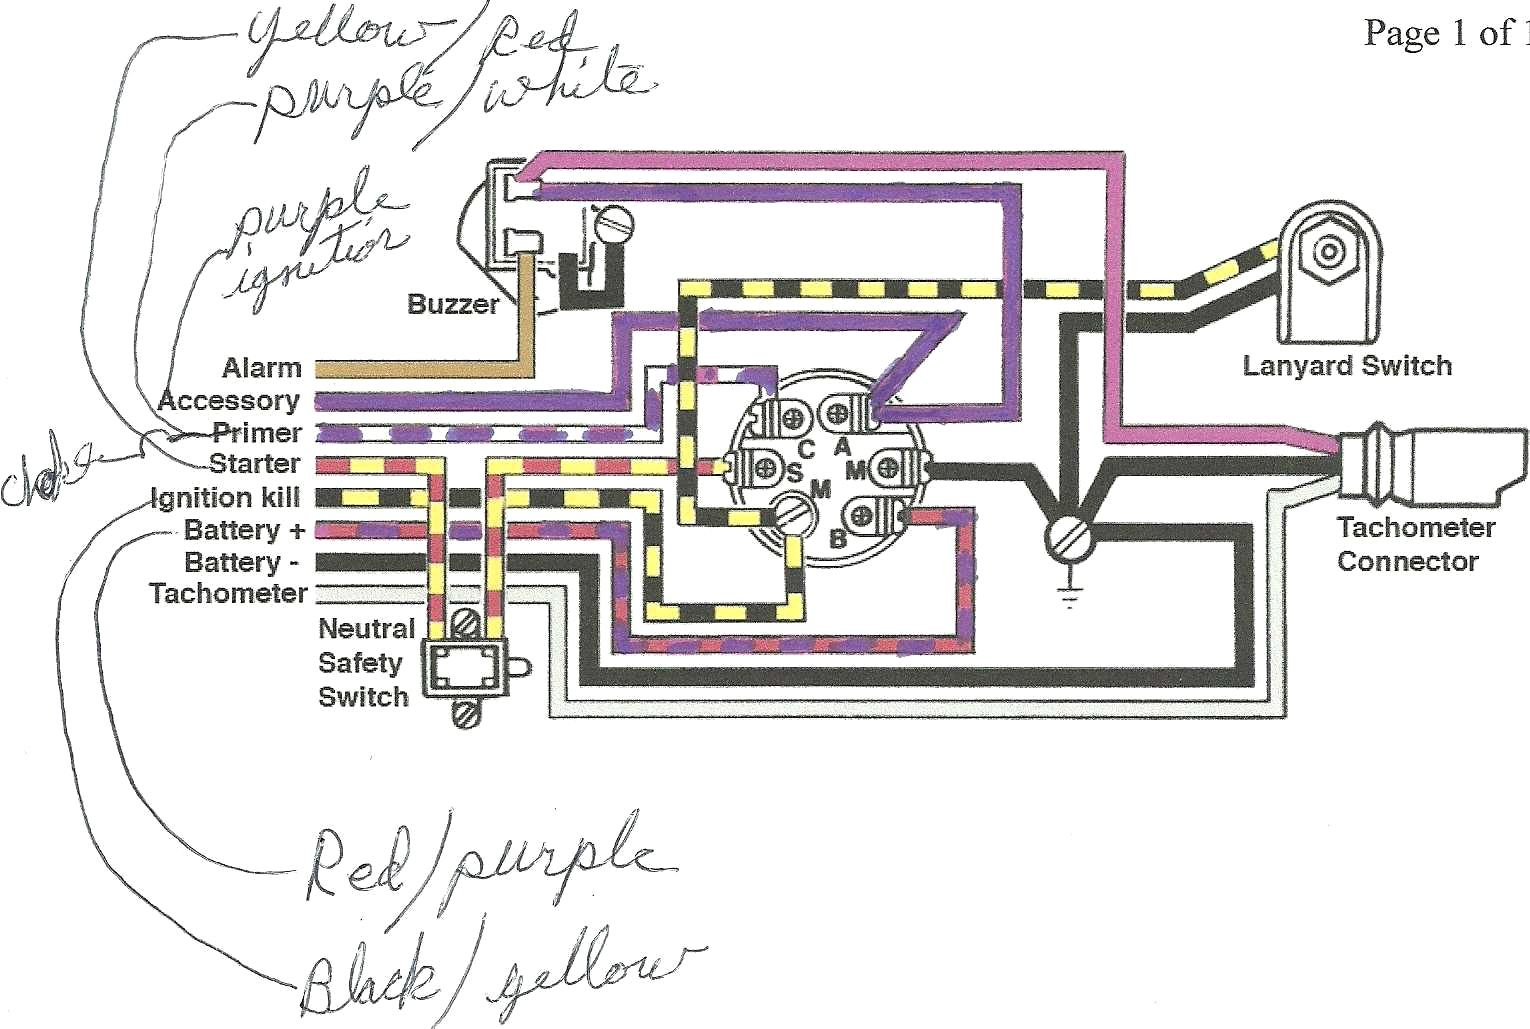 Boat Ignition Switch Wiring Diagram - Today Wiring Diagram - Boat Ignition Switch Wiring Diagram